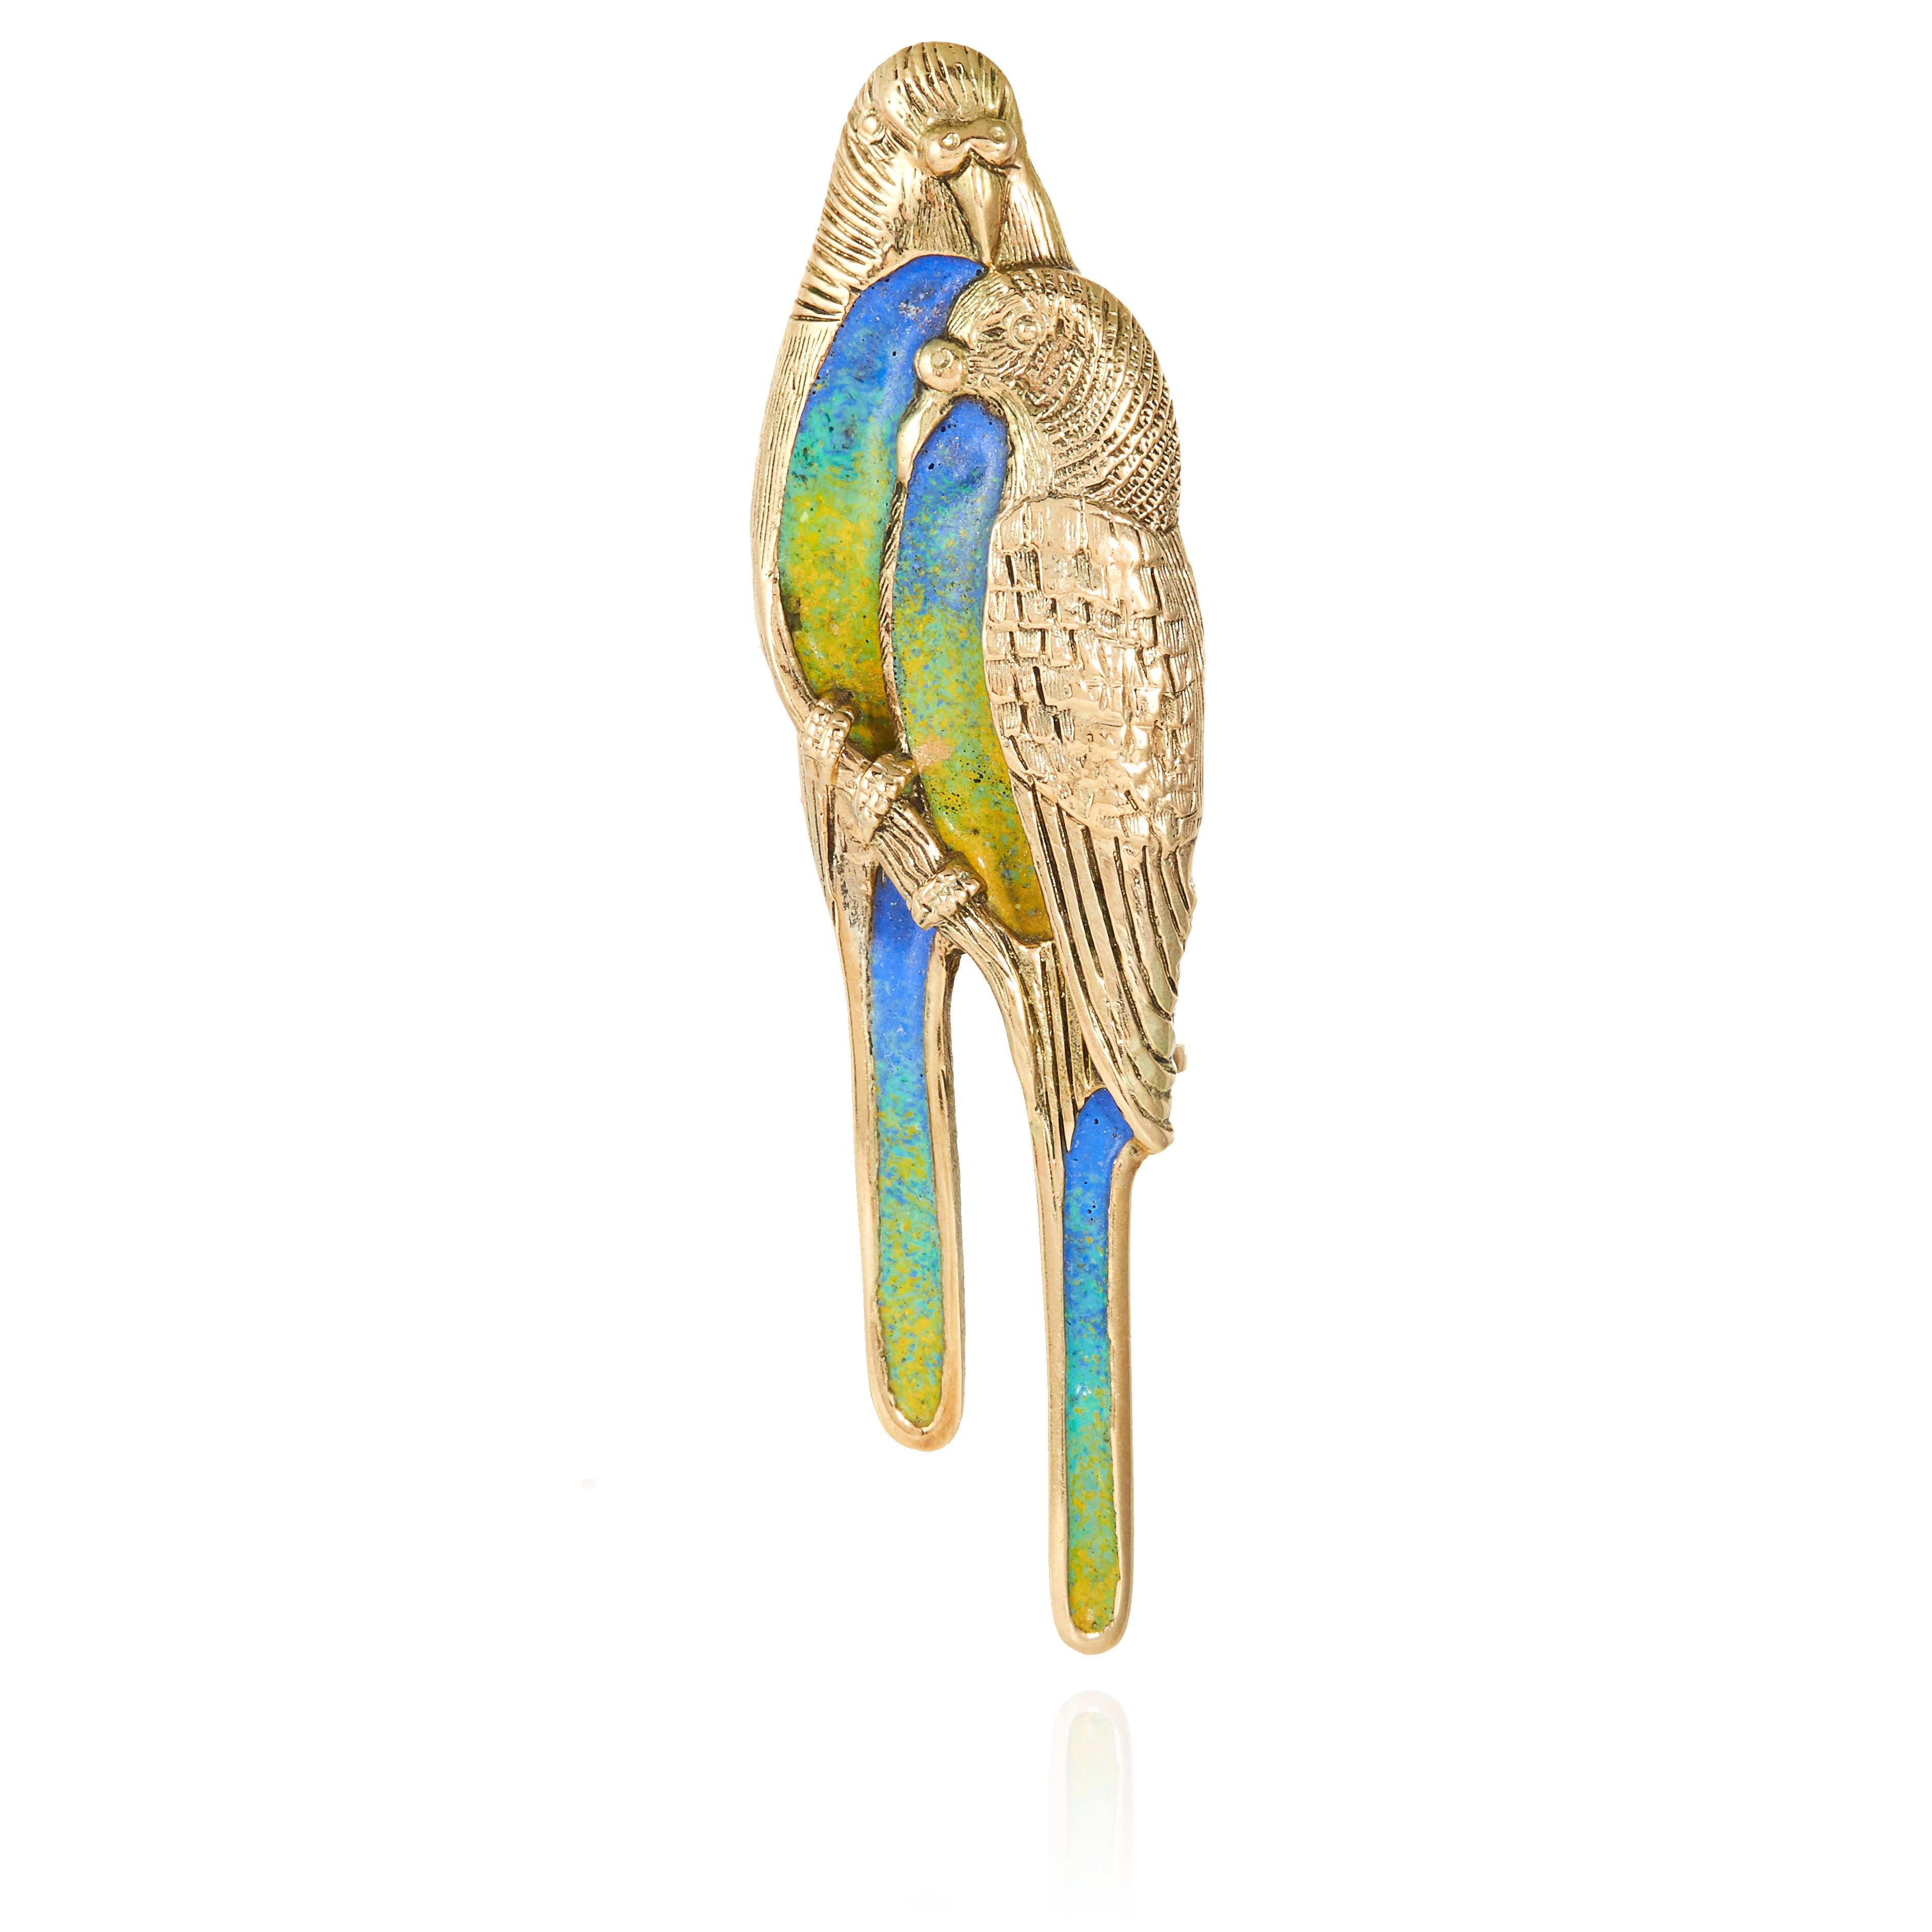 AN ENAMEL BIRD BROOCH designed as two parakeets with enamelled bodies and tails, unmarked, 6cm, 8.